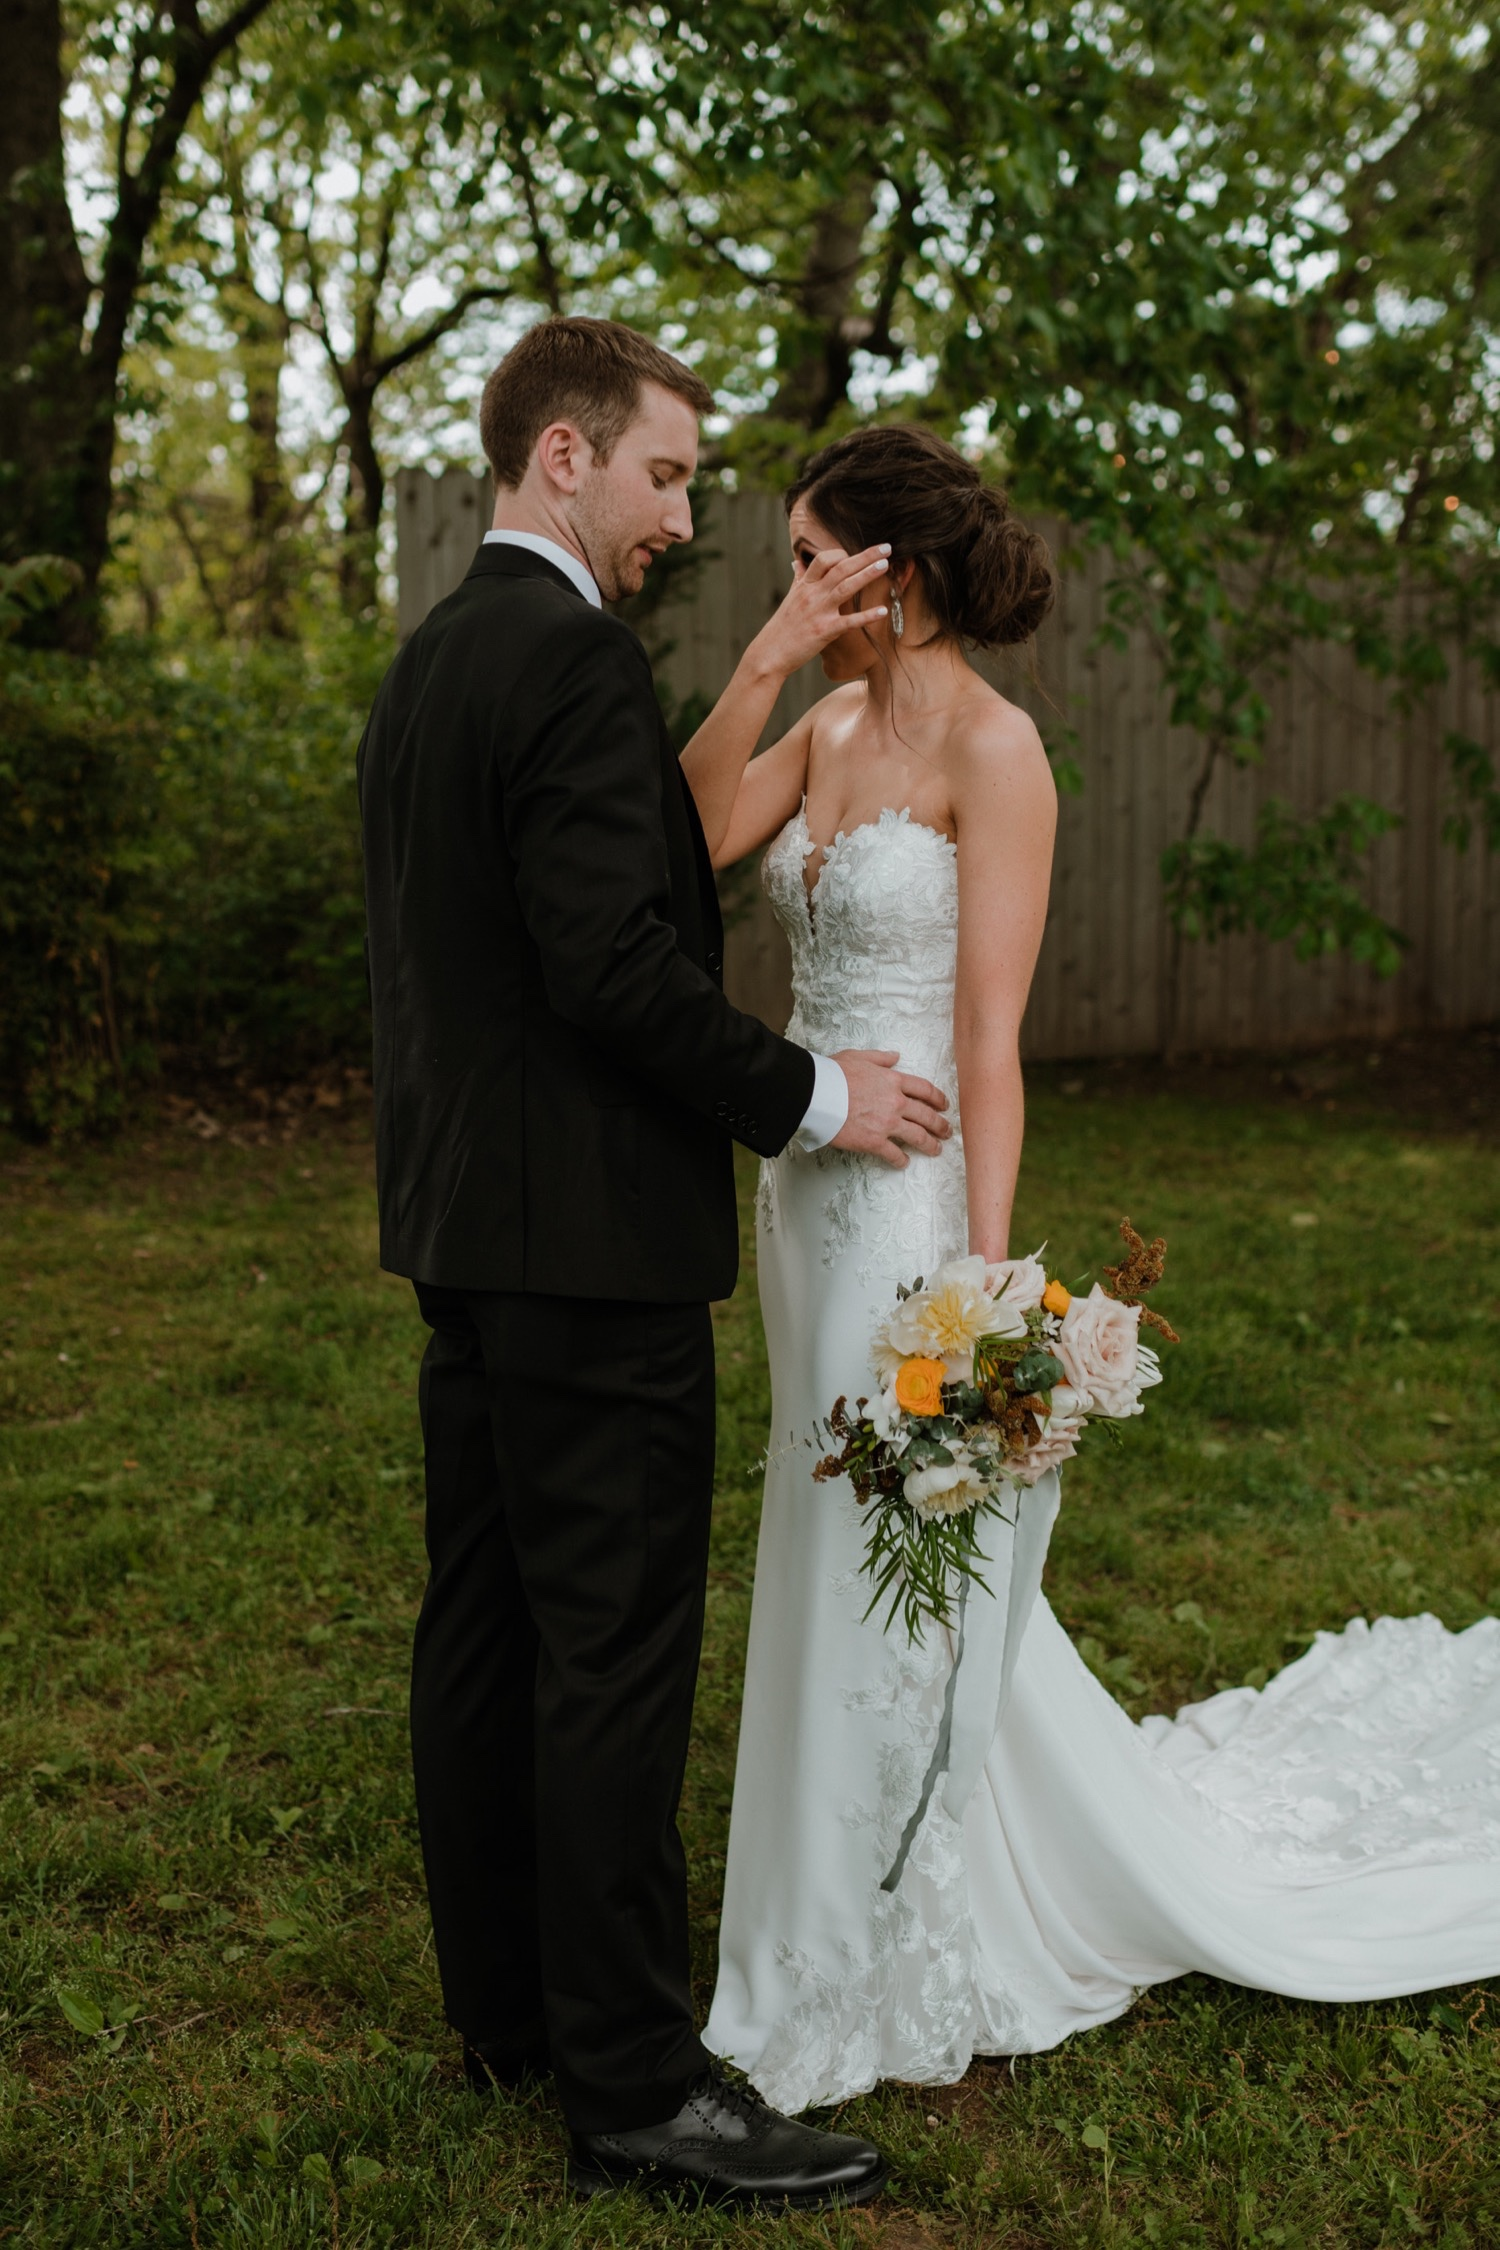 25_JacobandAliWeddingMattLaneFarmFreckledFoxPhotography-281.jpg